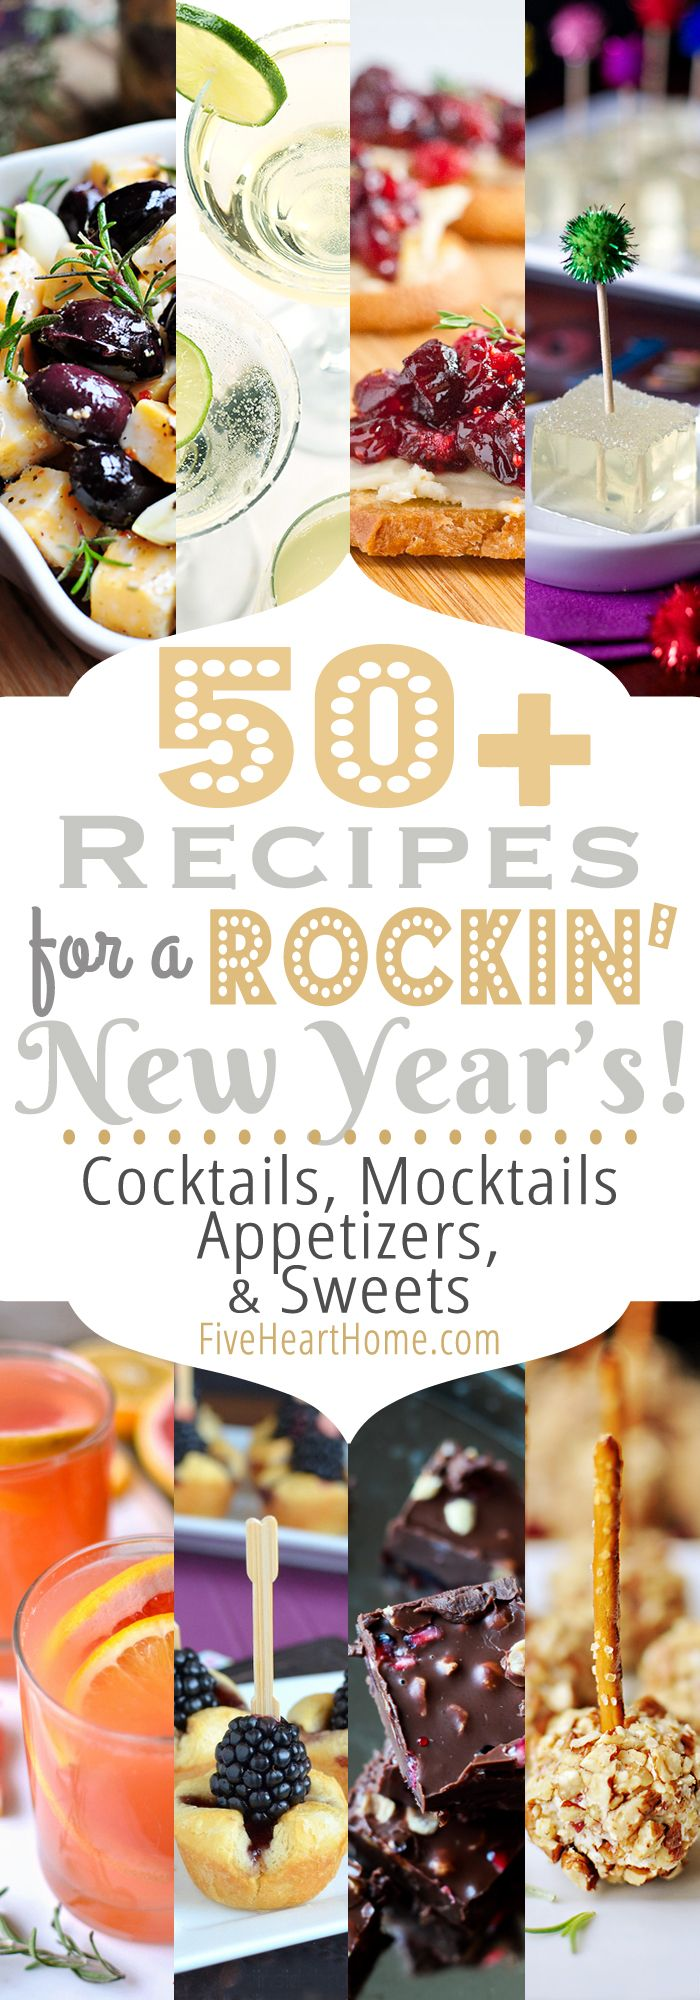 50+ Recipes for New Year's Eve ~ Cocktails, Mocktails, Appetizers, and Sweets | FiveHeartHome.com